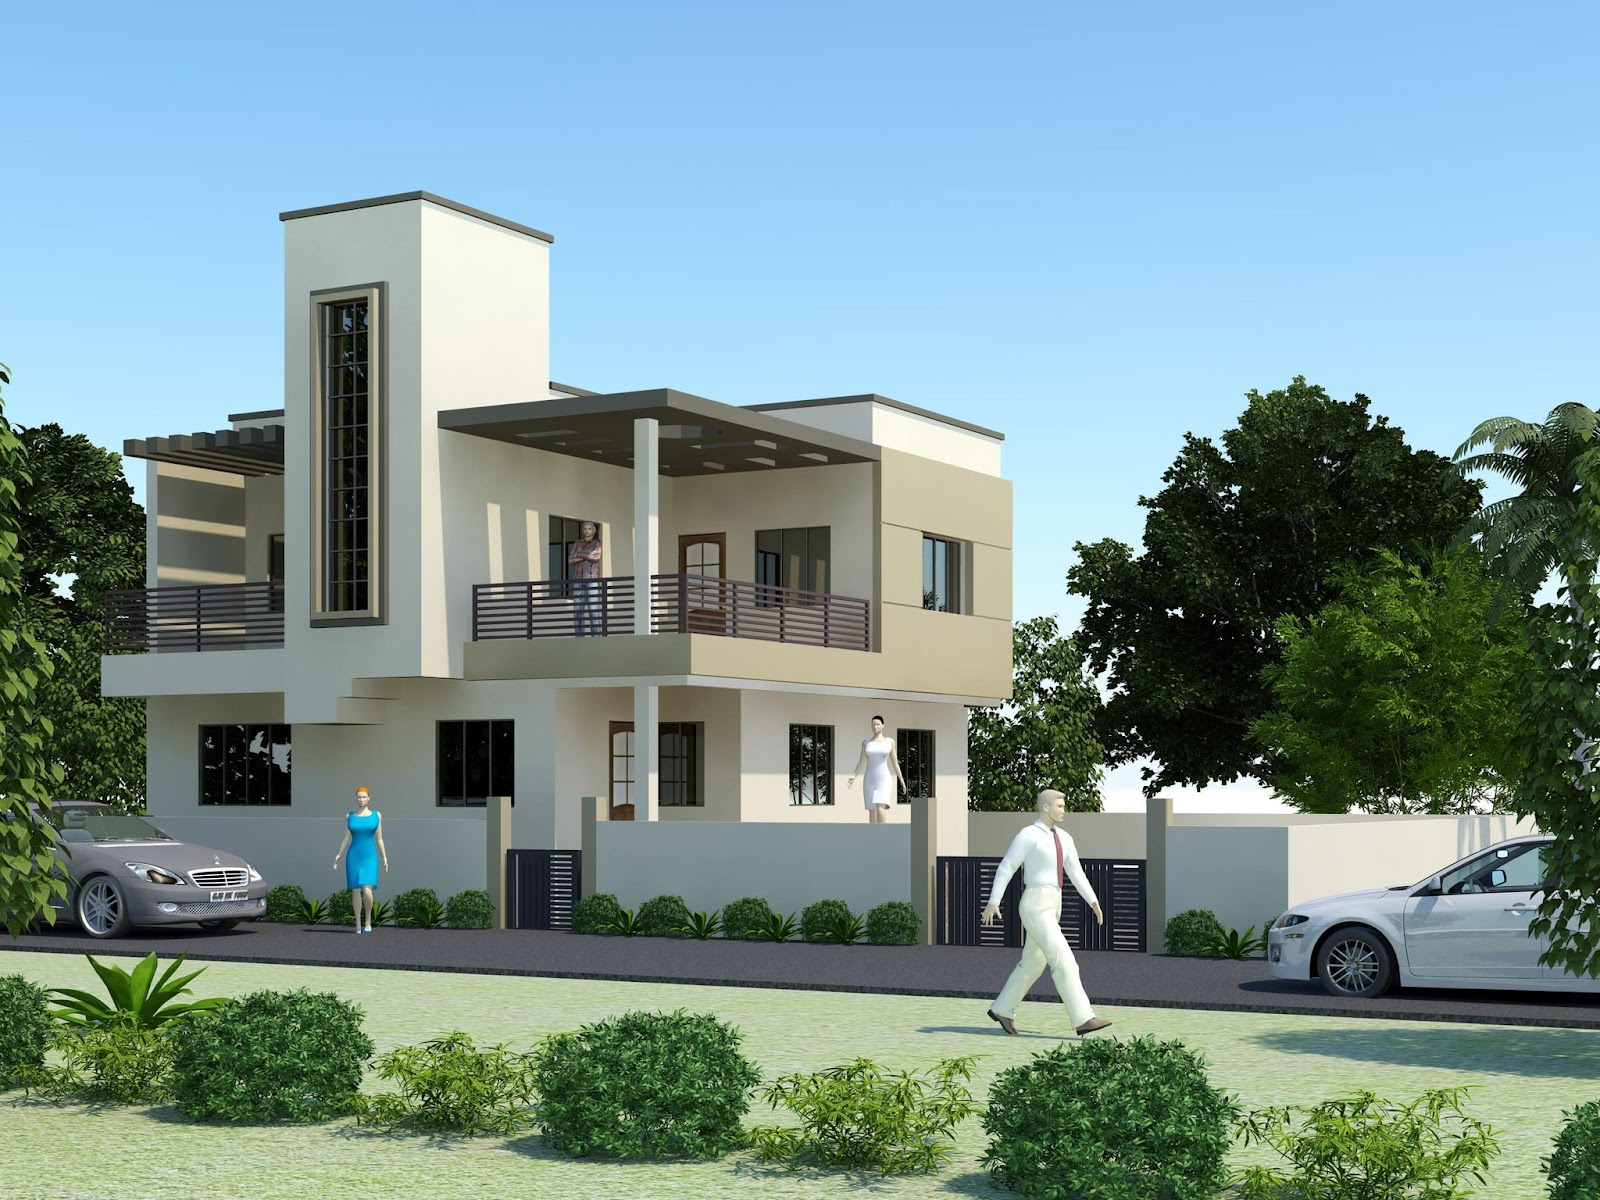 New home designs latest modern homes exterior designs for Front house design for small houses